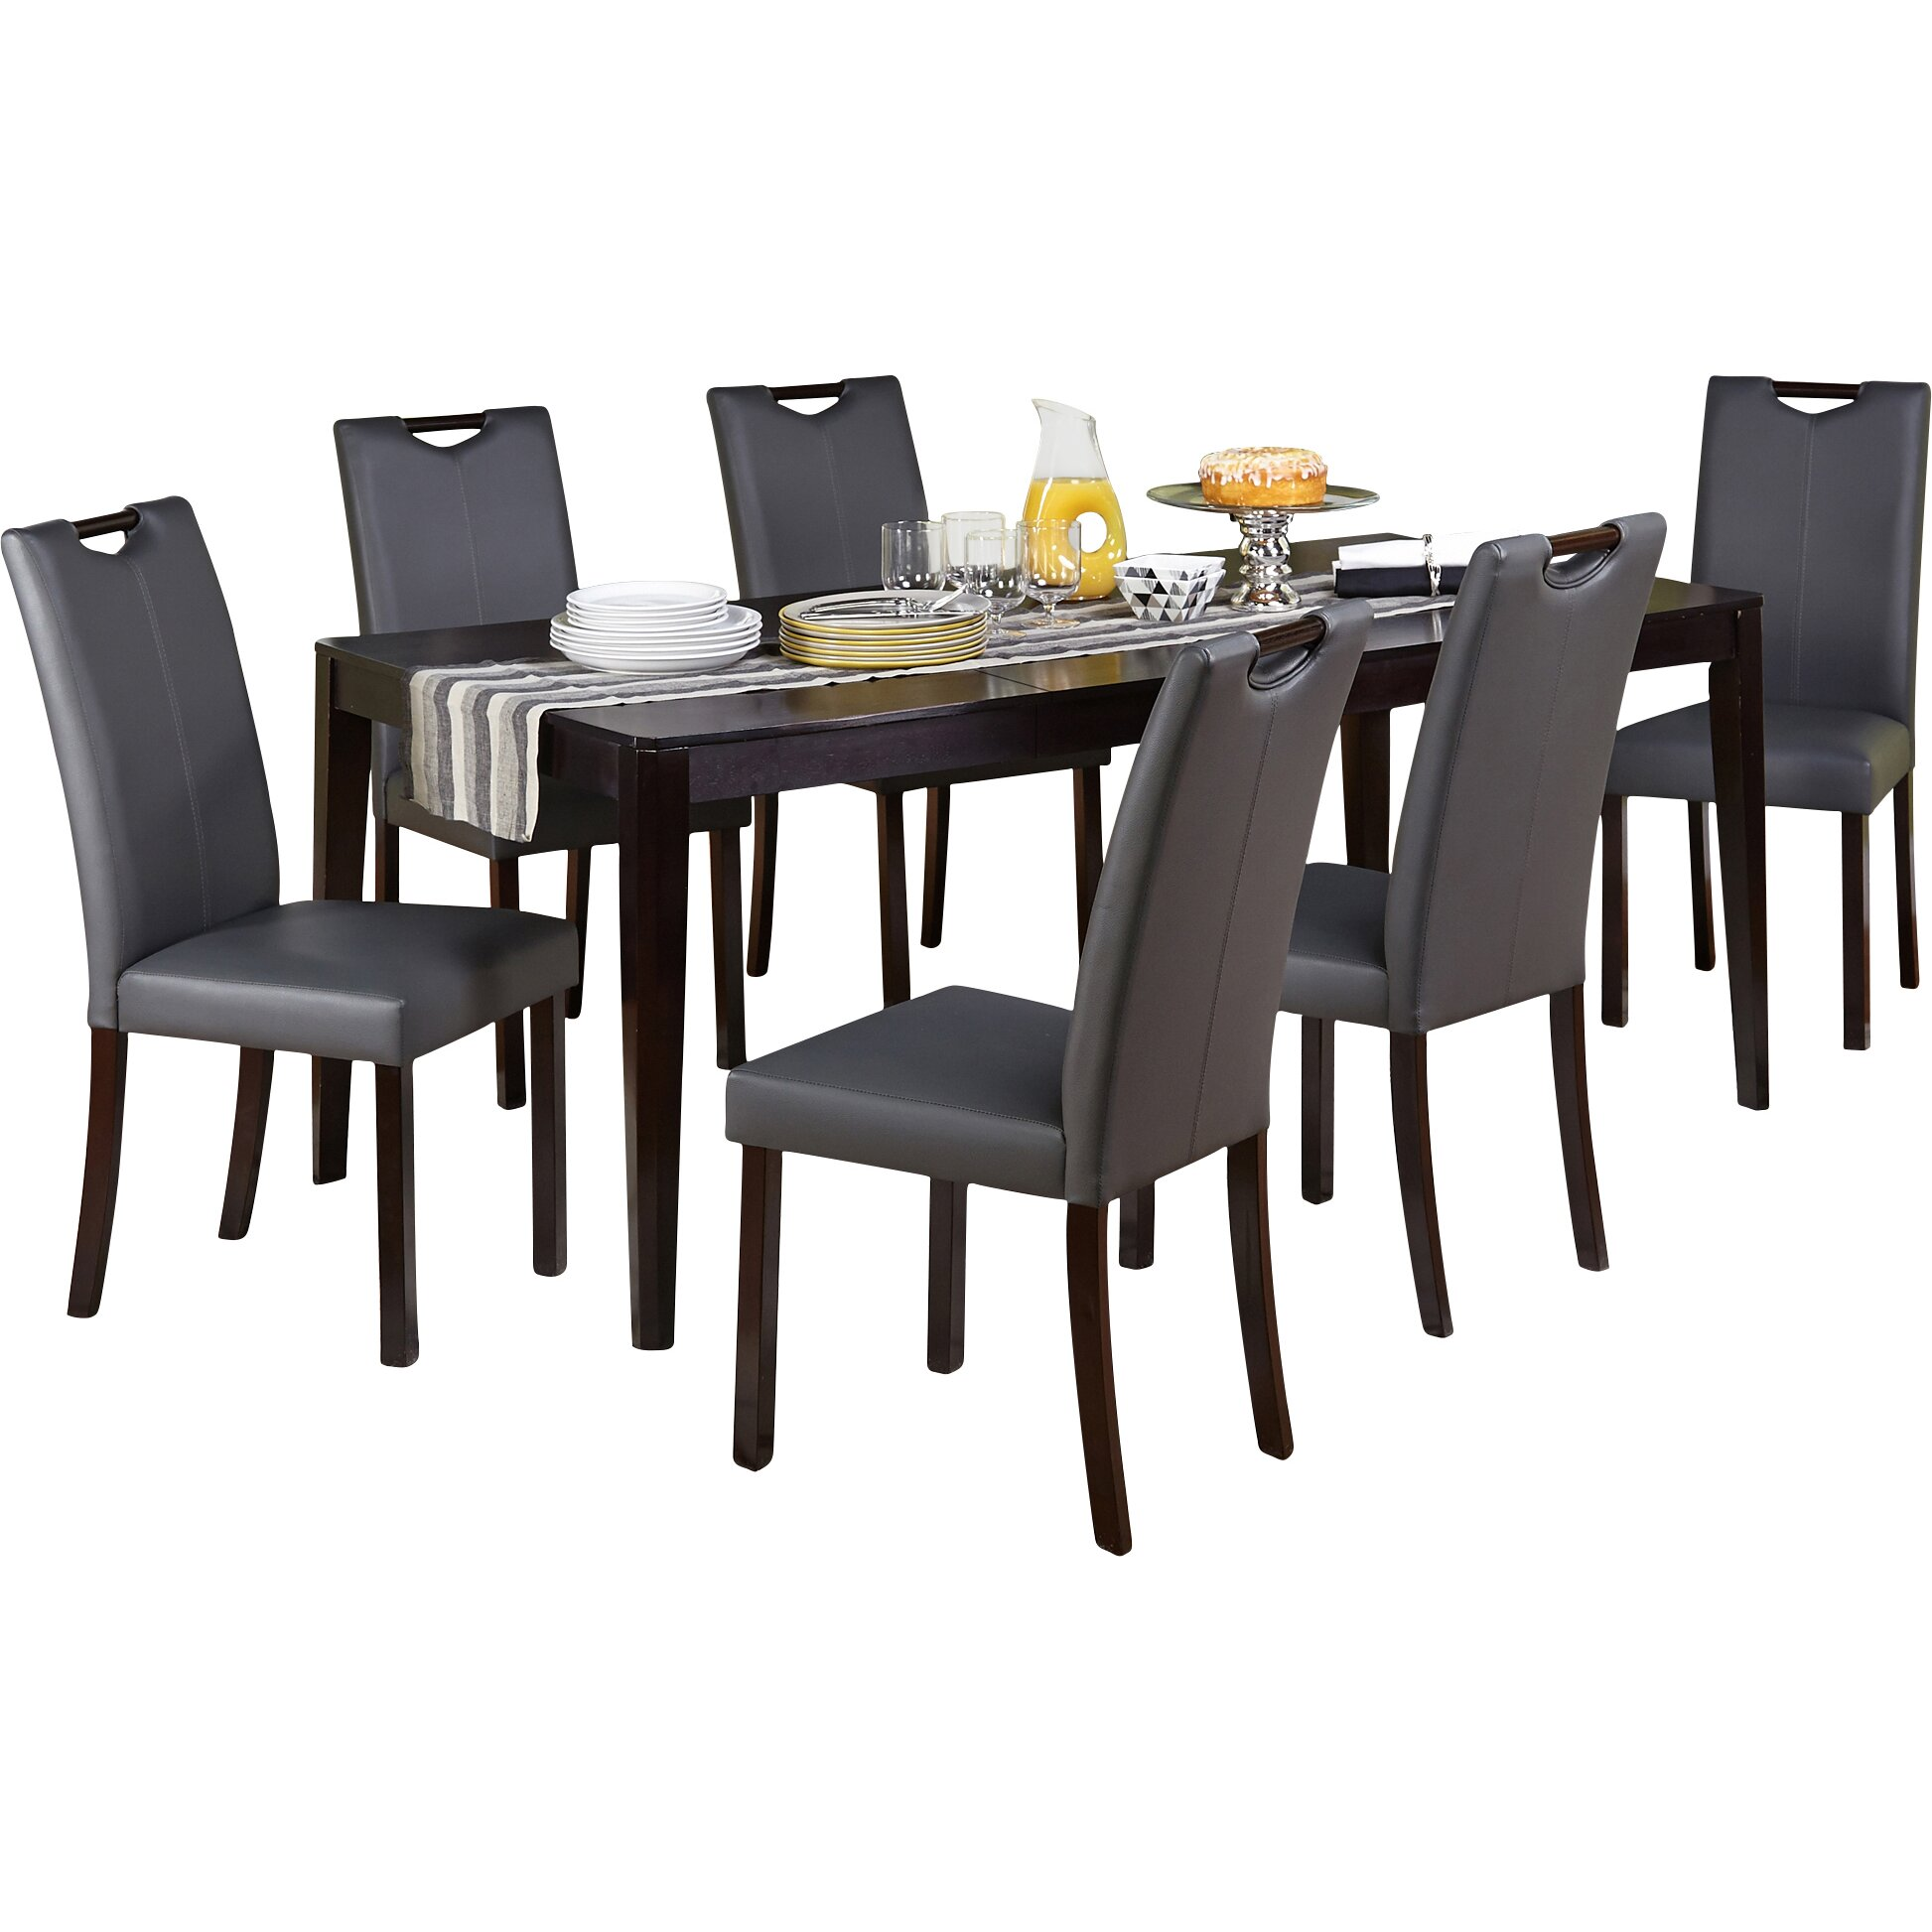 Tms tilo 7 piece dining set reviews wayfair for 7 piece dining set